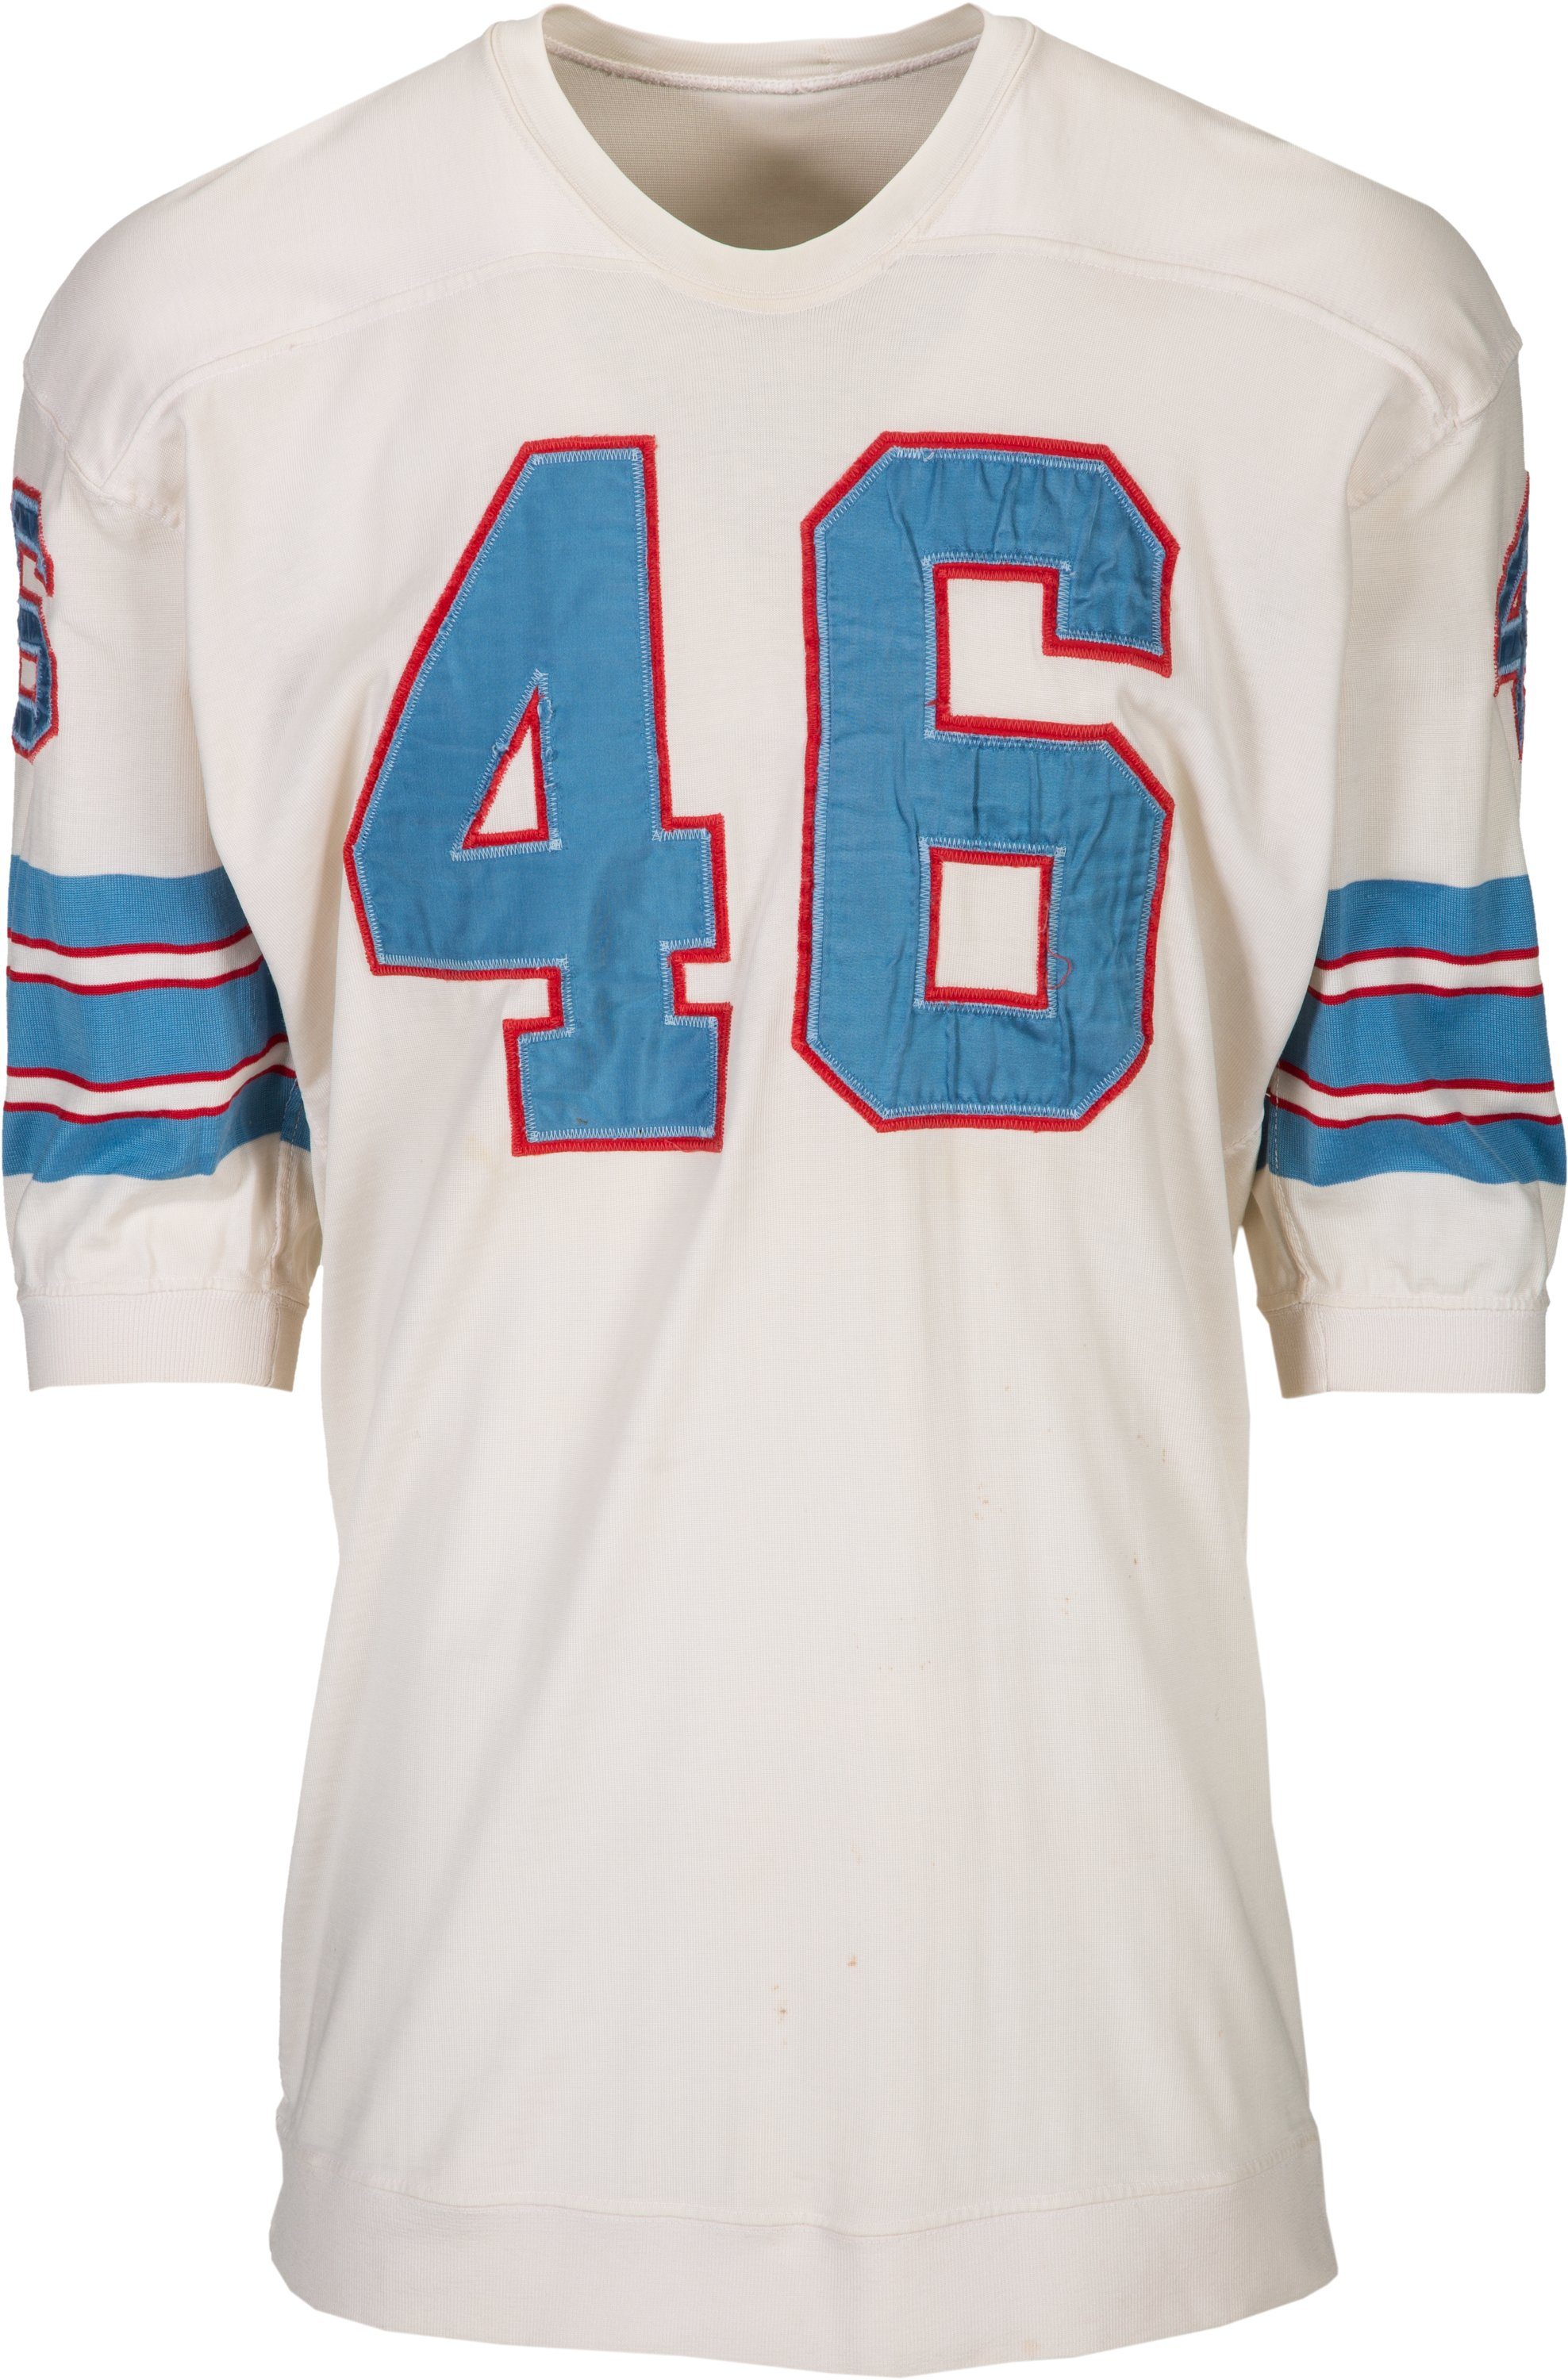 1966 67 Houston Oilers Game Worn Jersey Football Collectibles Lot 82230 Heritage Auctions